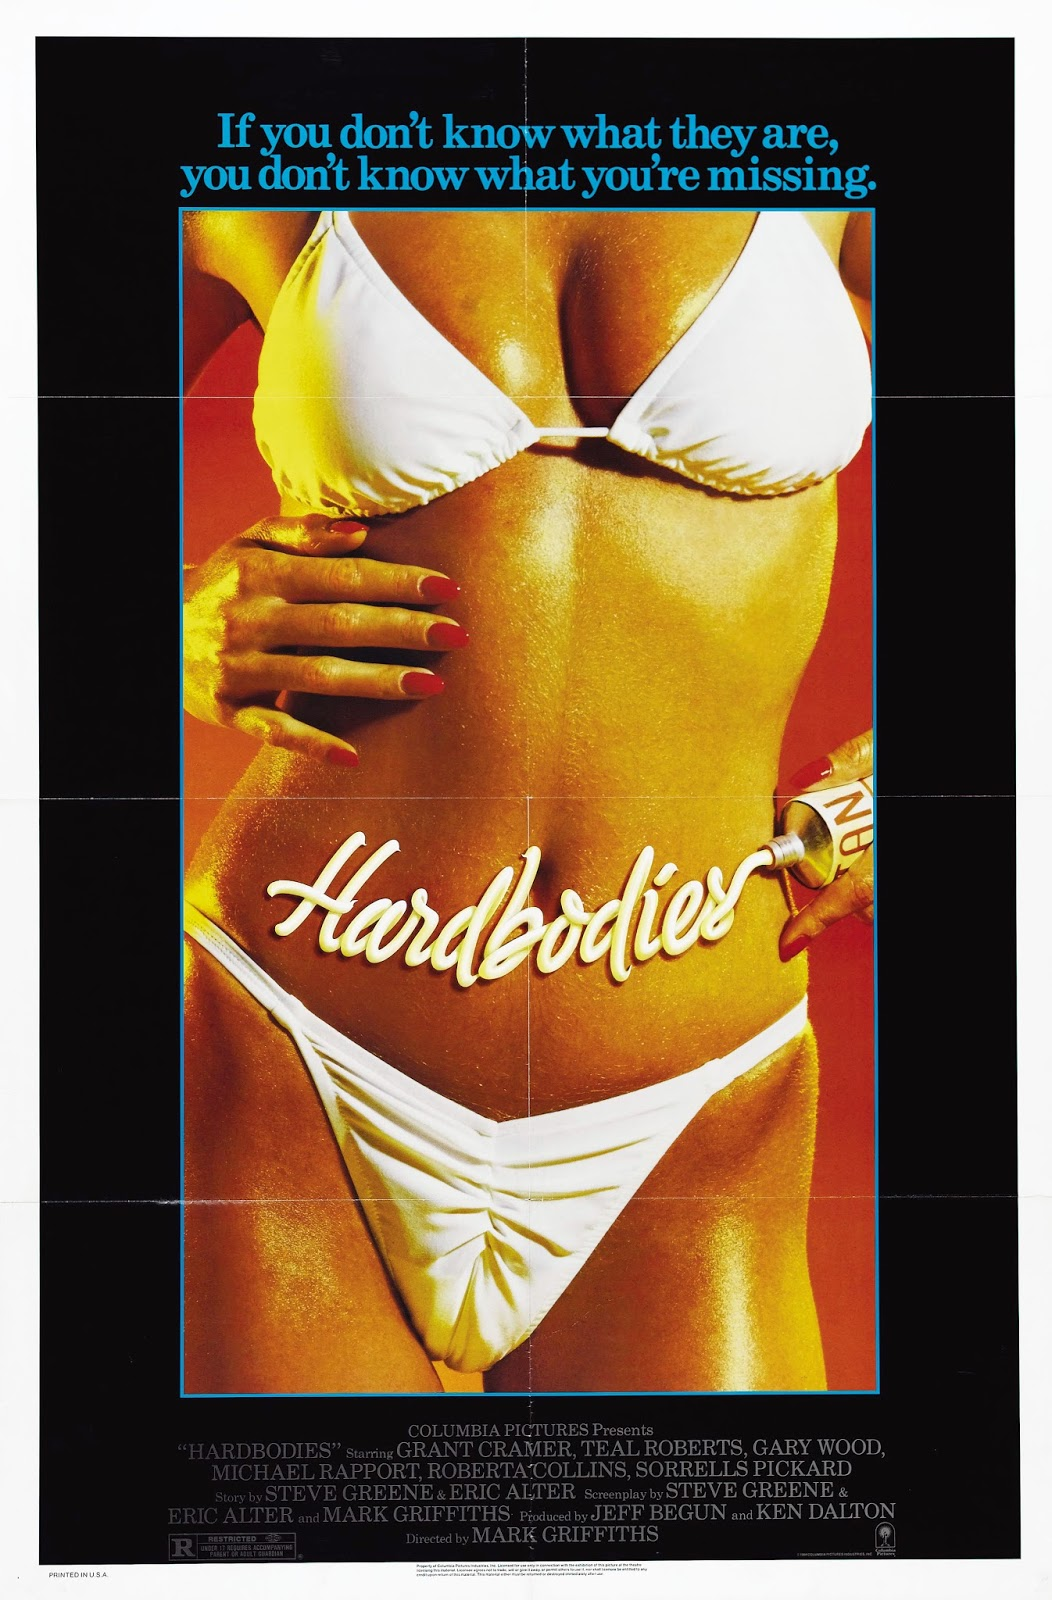 Hardbodies 1984 movie poster